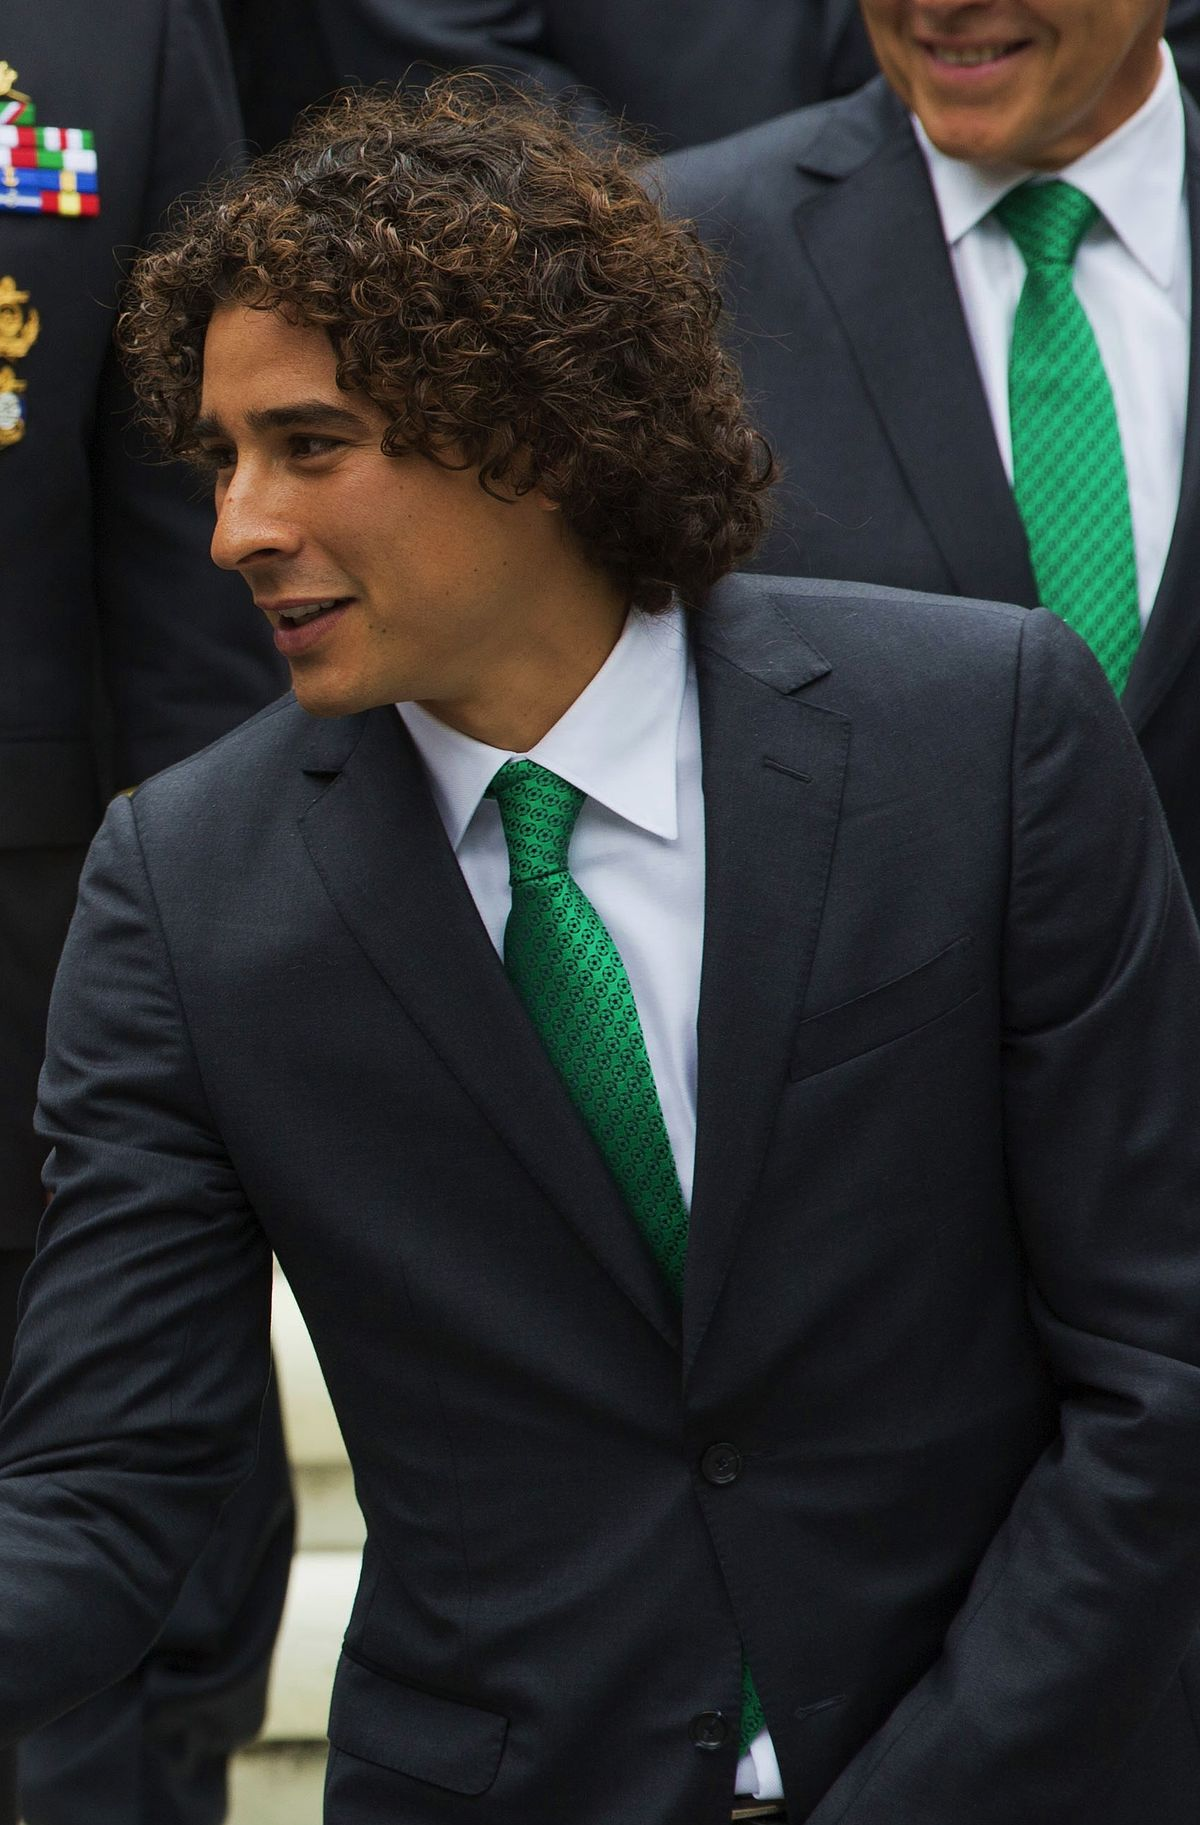 Guillermo ochoa wikipedia - Guillermo ochoa wallpaper ...